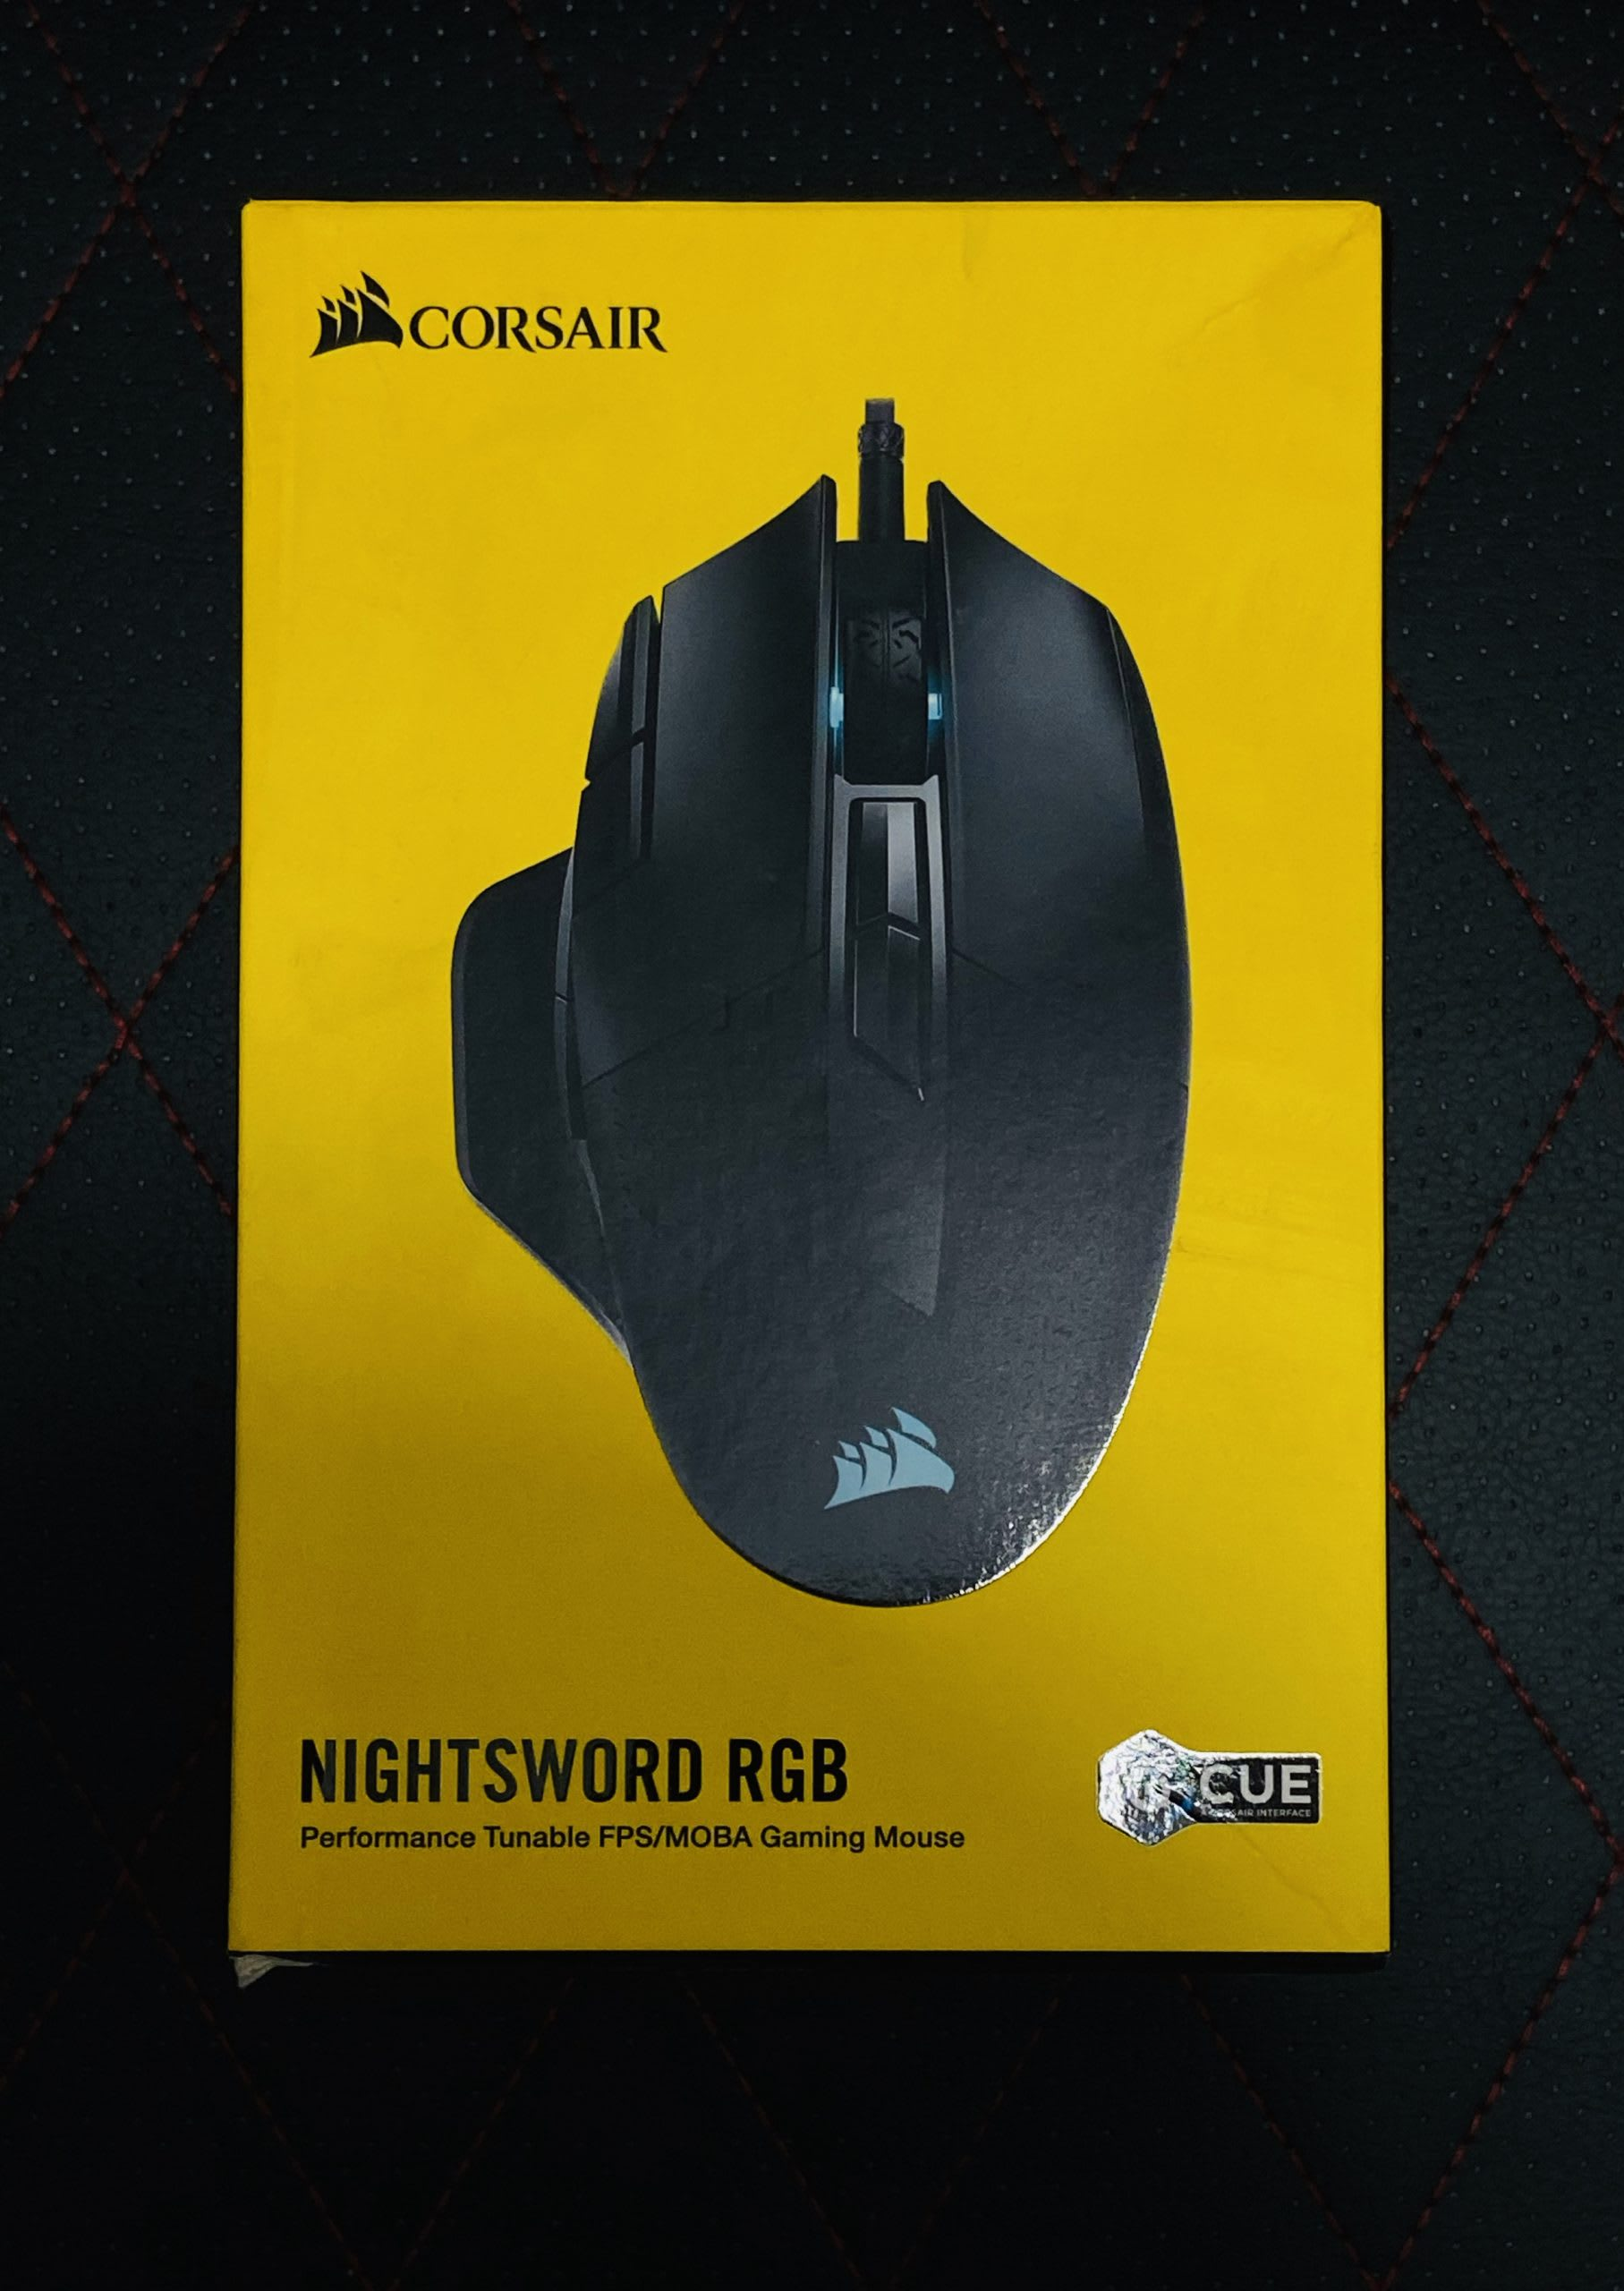 Corsair NightSword RGB Gaming Mouse Review 1